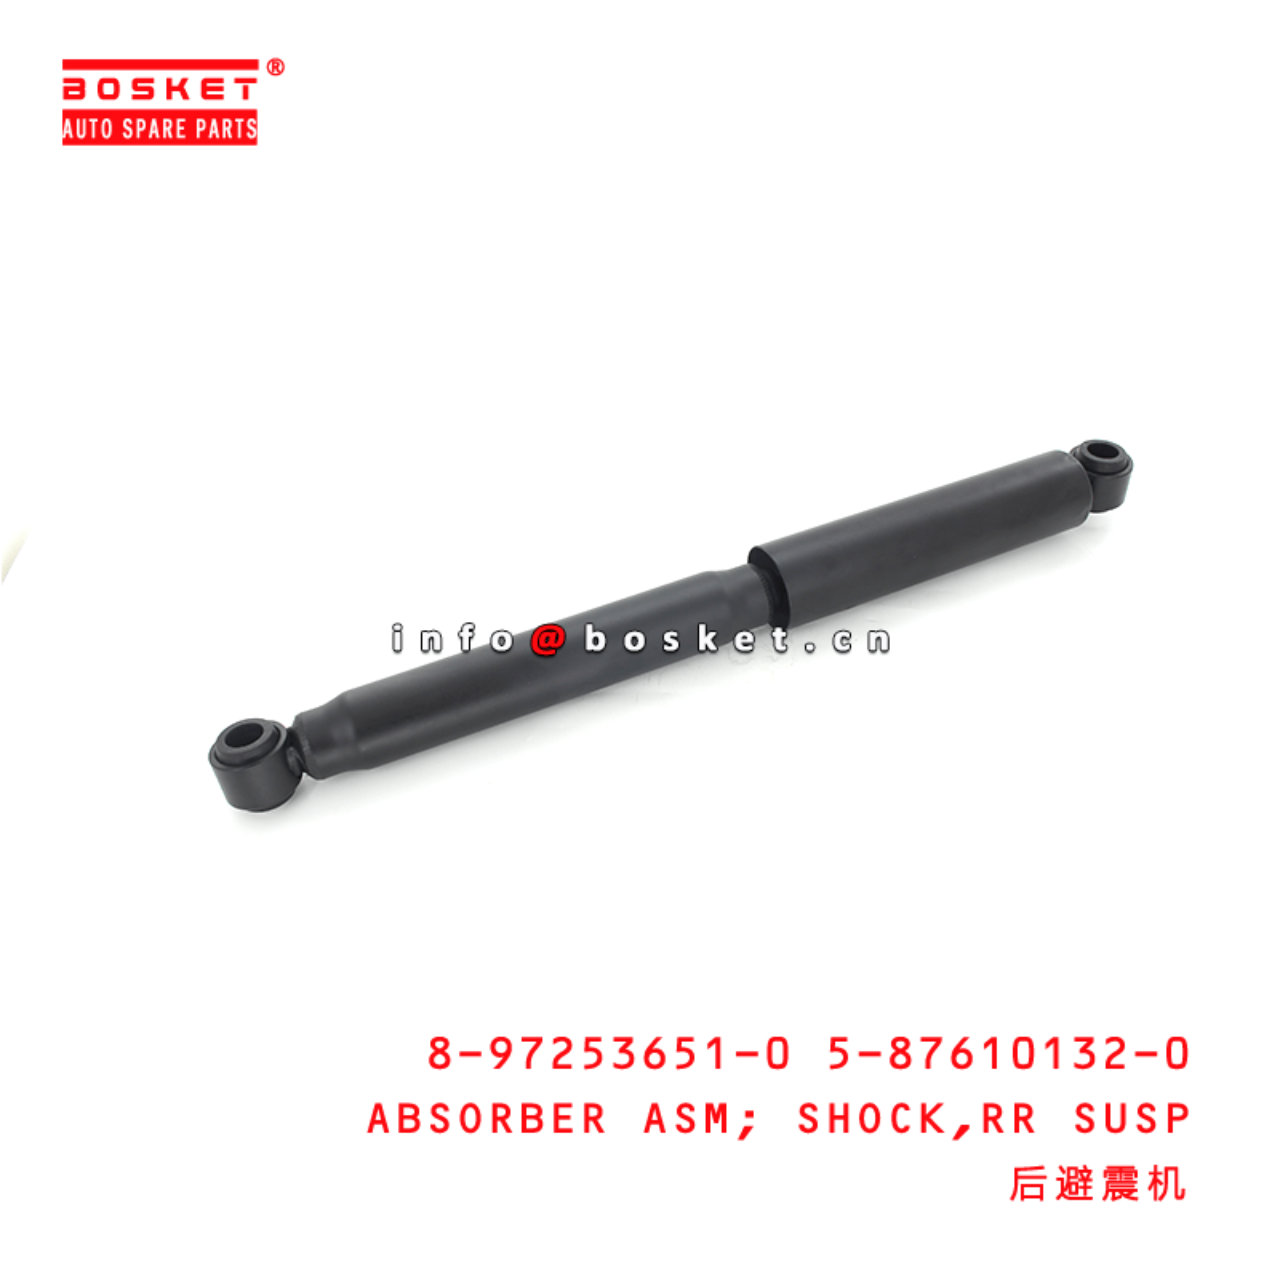 8-97253651-0 5-87610132-0 Rear Suspension Shock Absorber Assembly 8972536510 5876101320 Suitable for